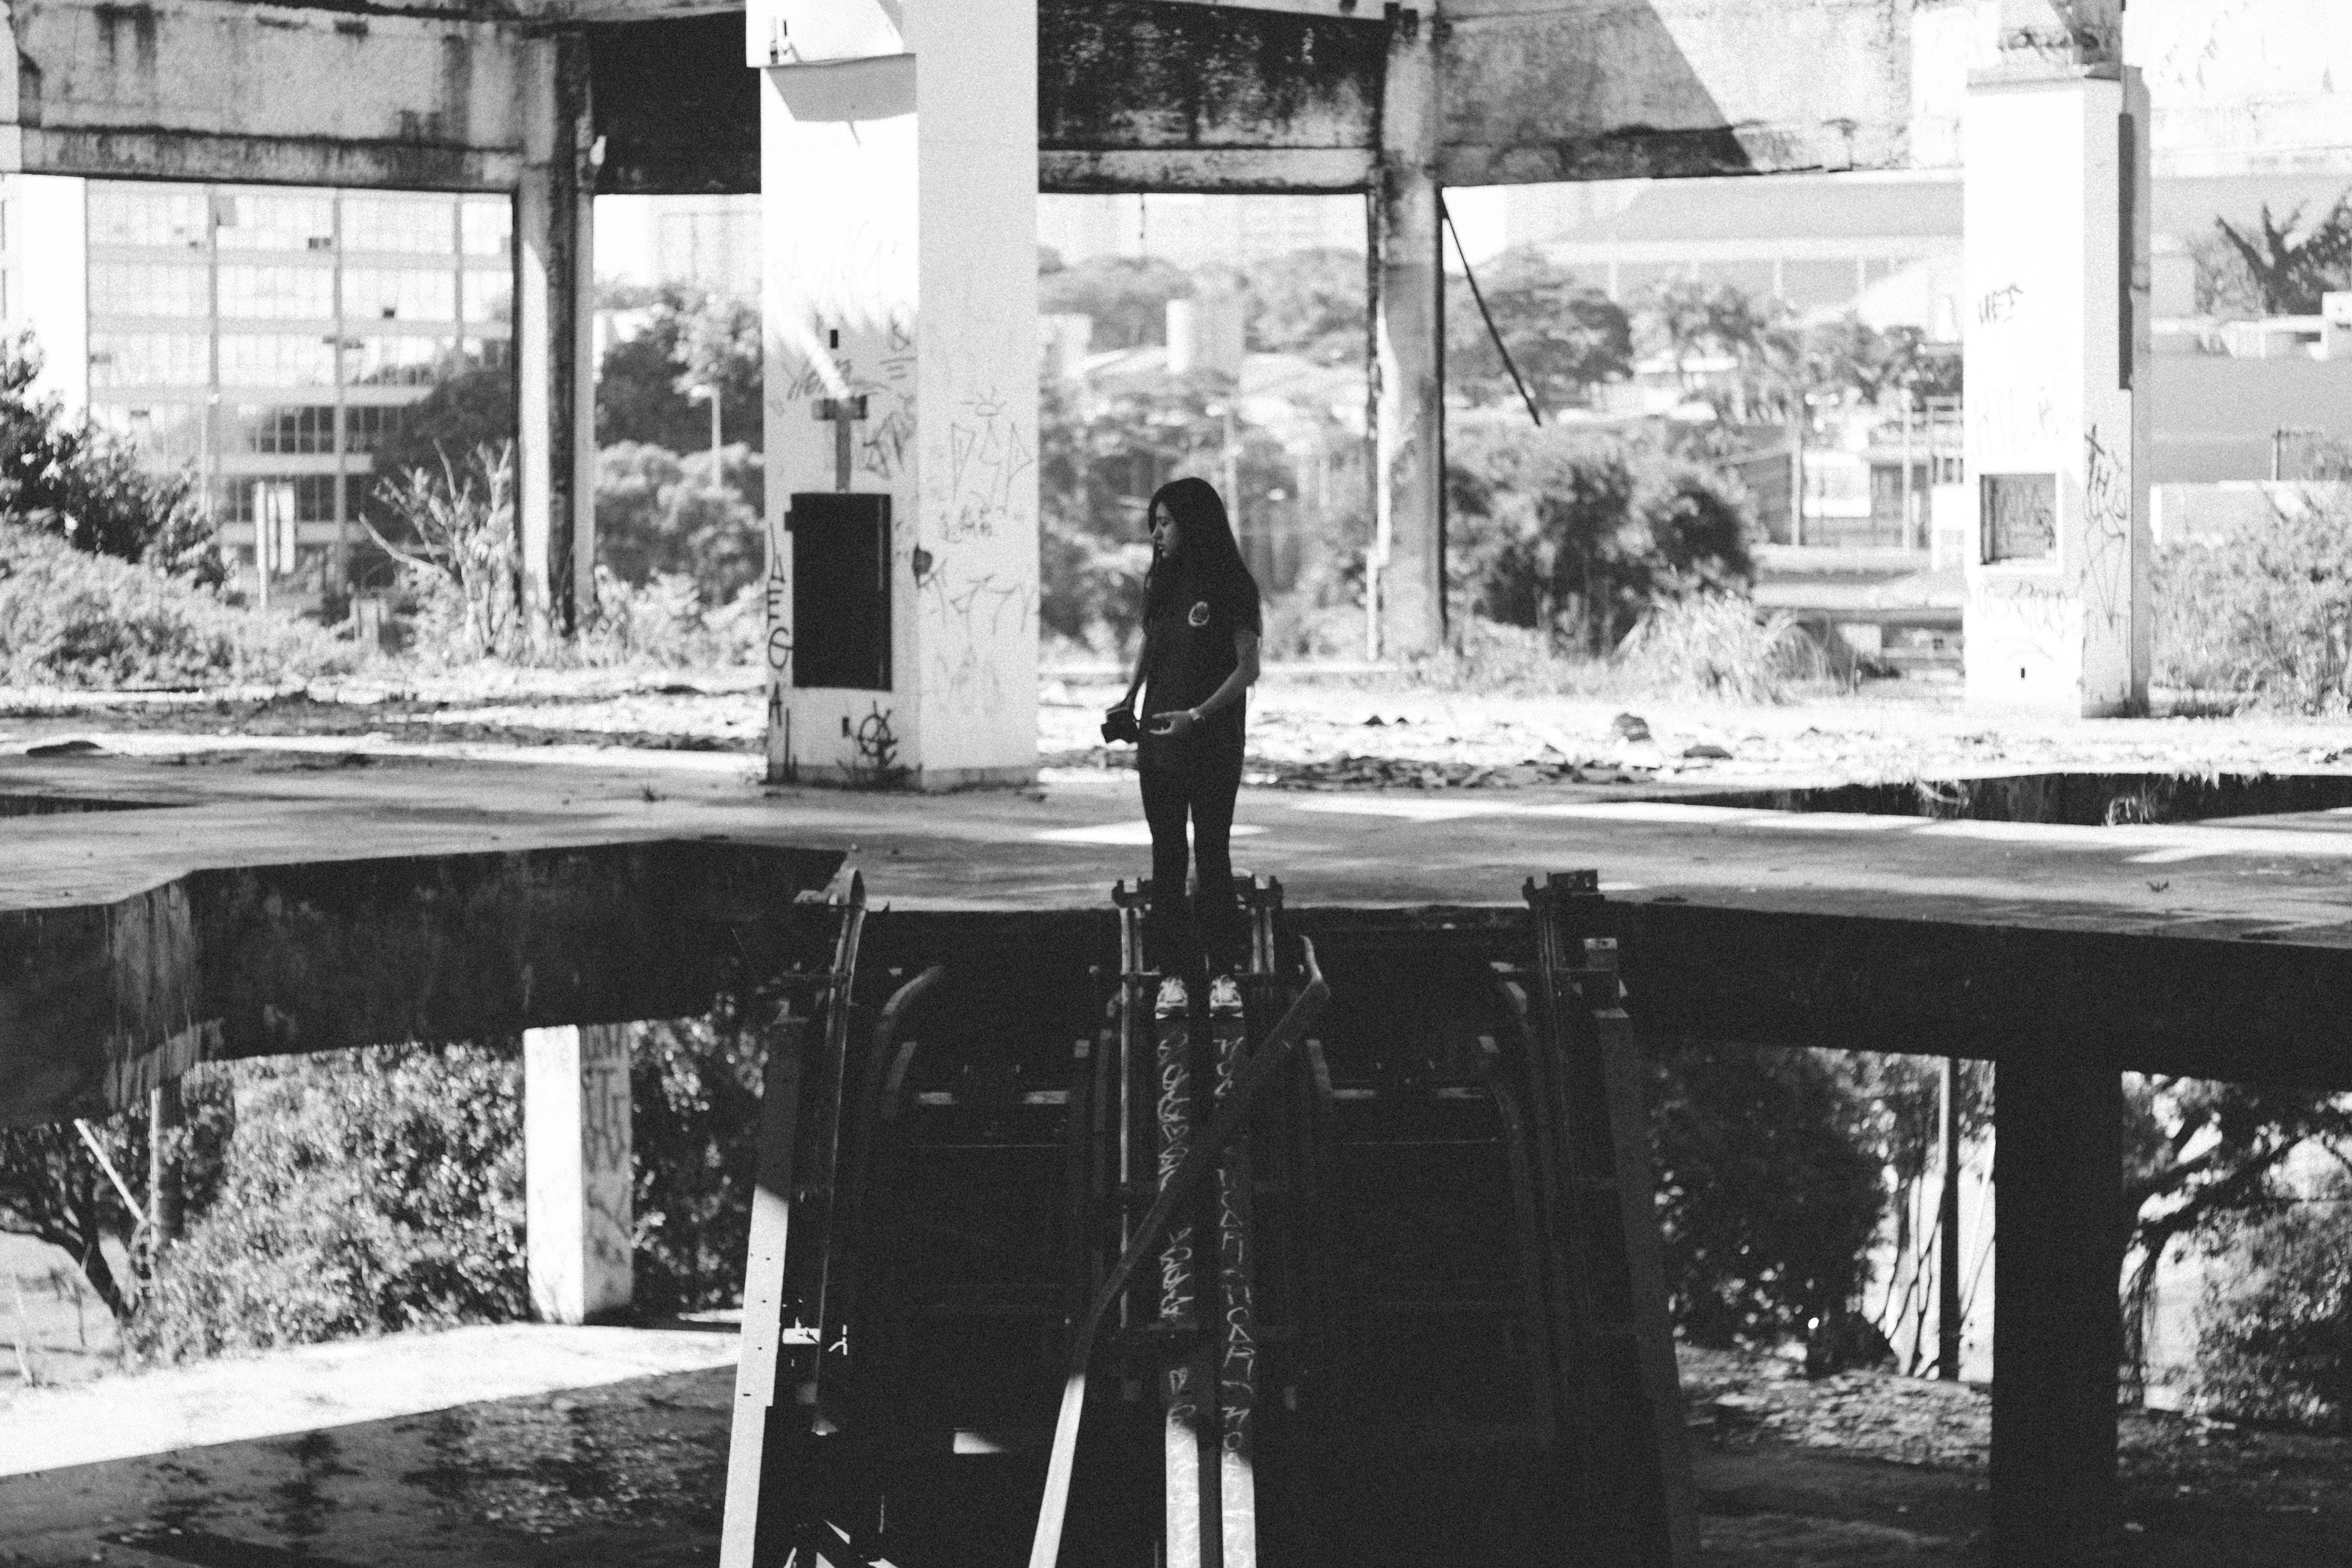 Grayscale Photo of Girl Standing on Concrete Pavement